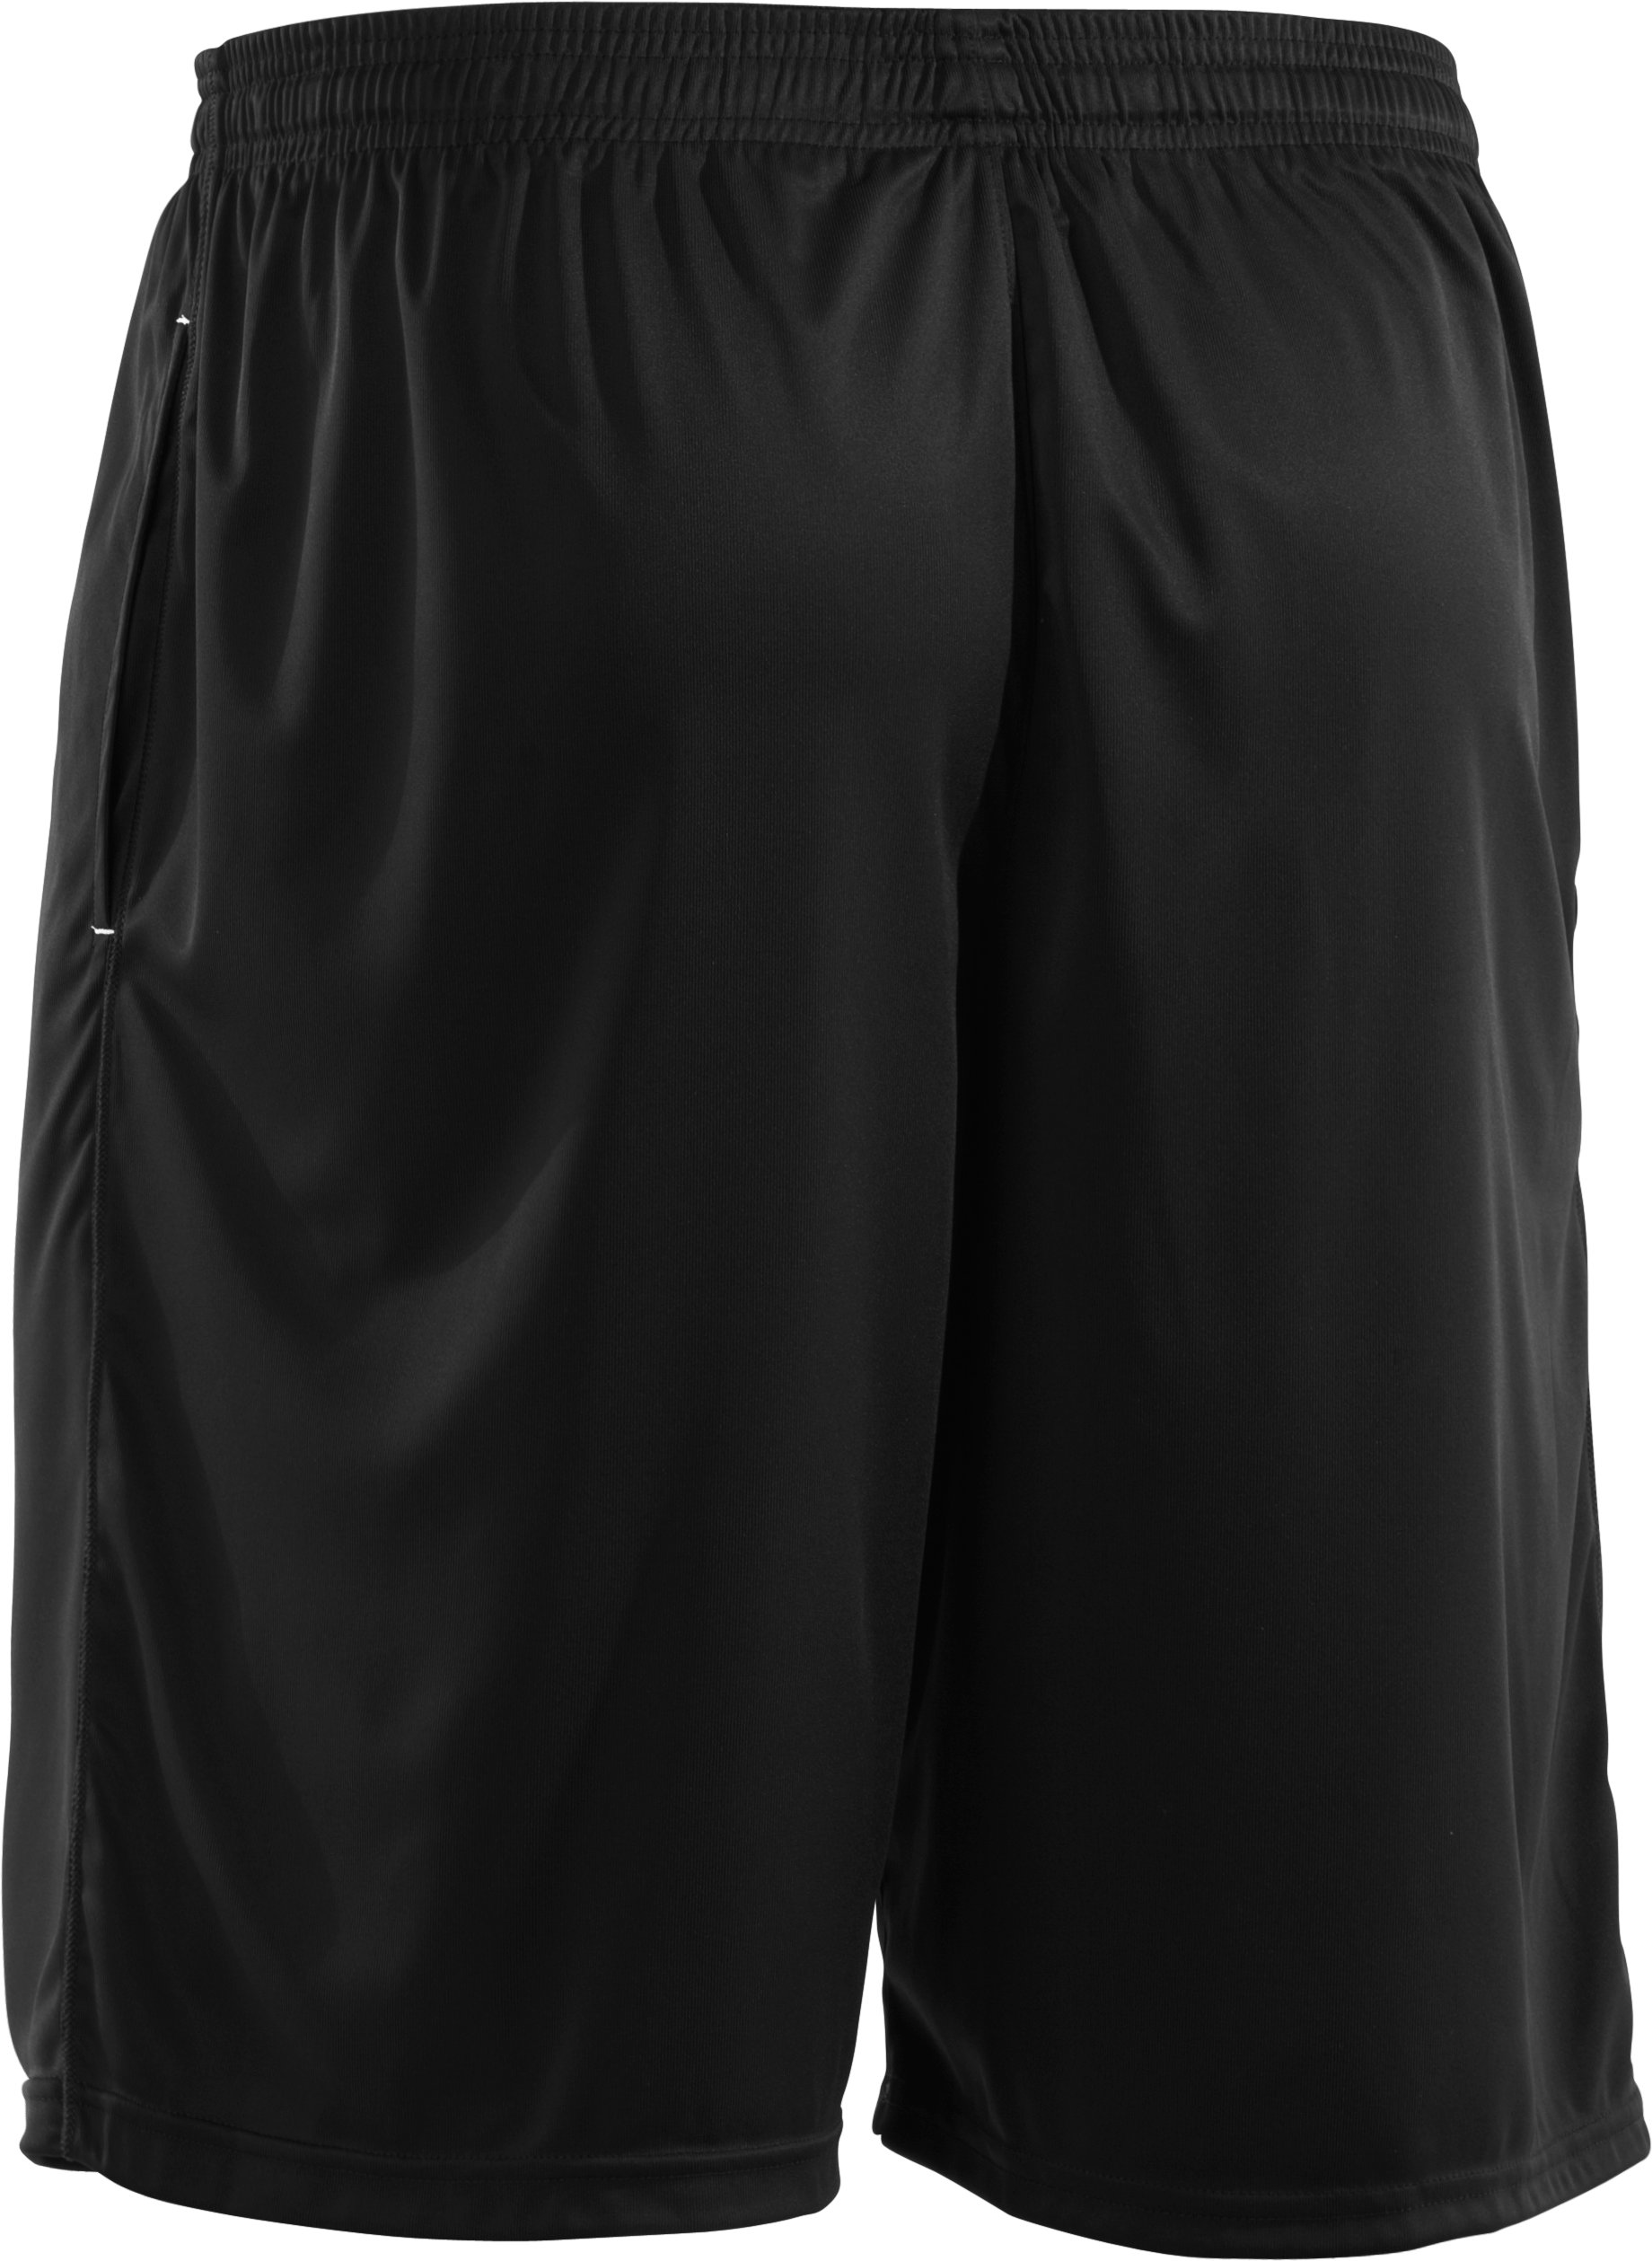 Men's UA Micro Solid Shorts, Black , undefined